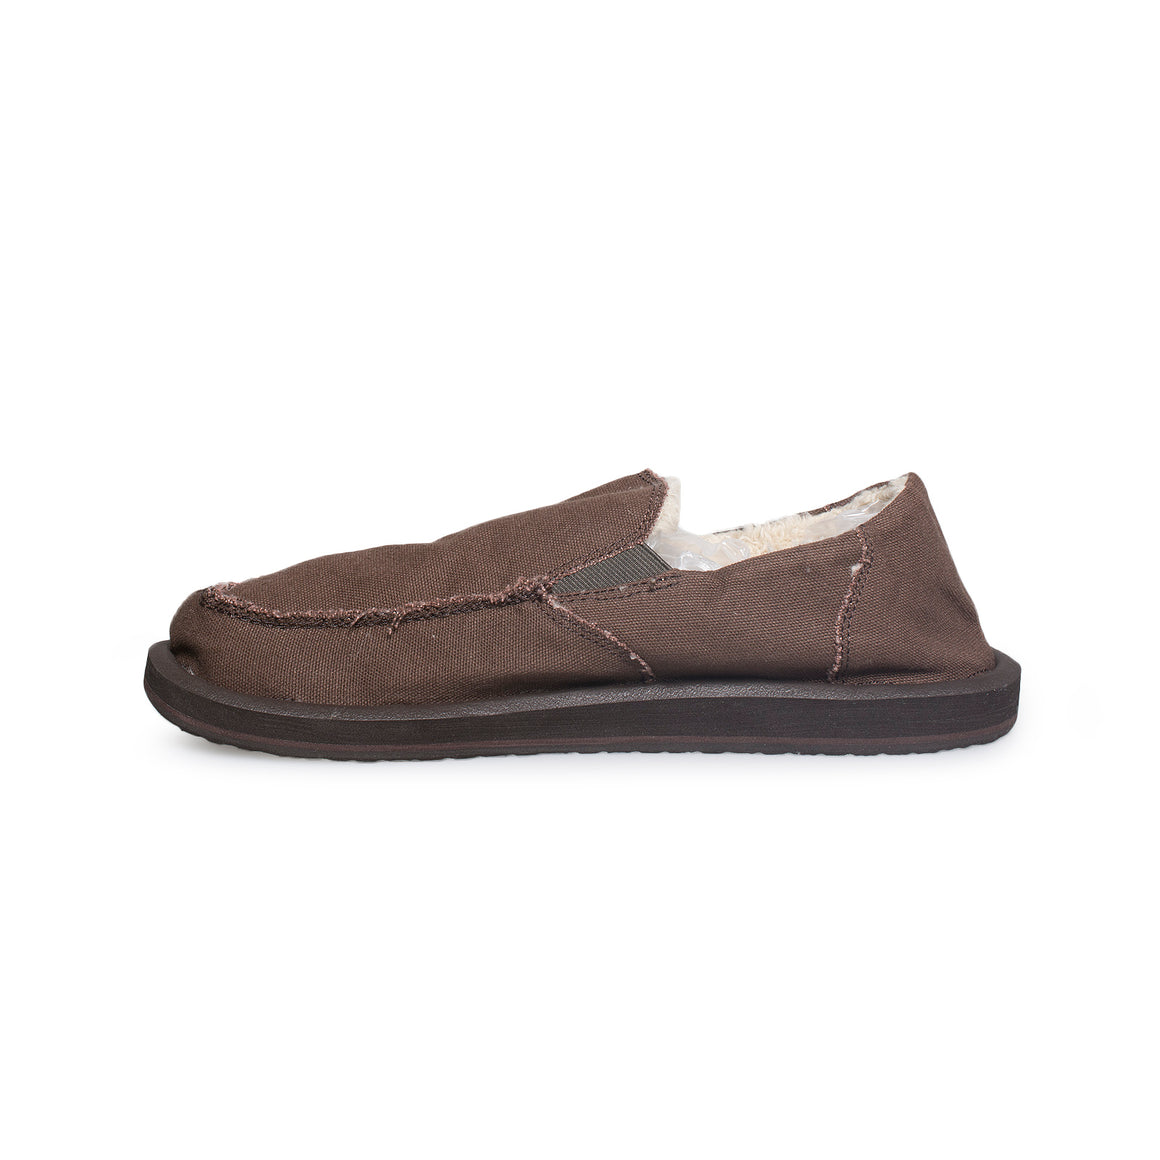 Sanuk Vagabond Chill Dark Brown Shoes - Men's